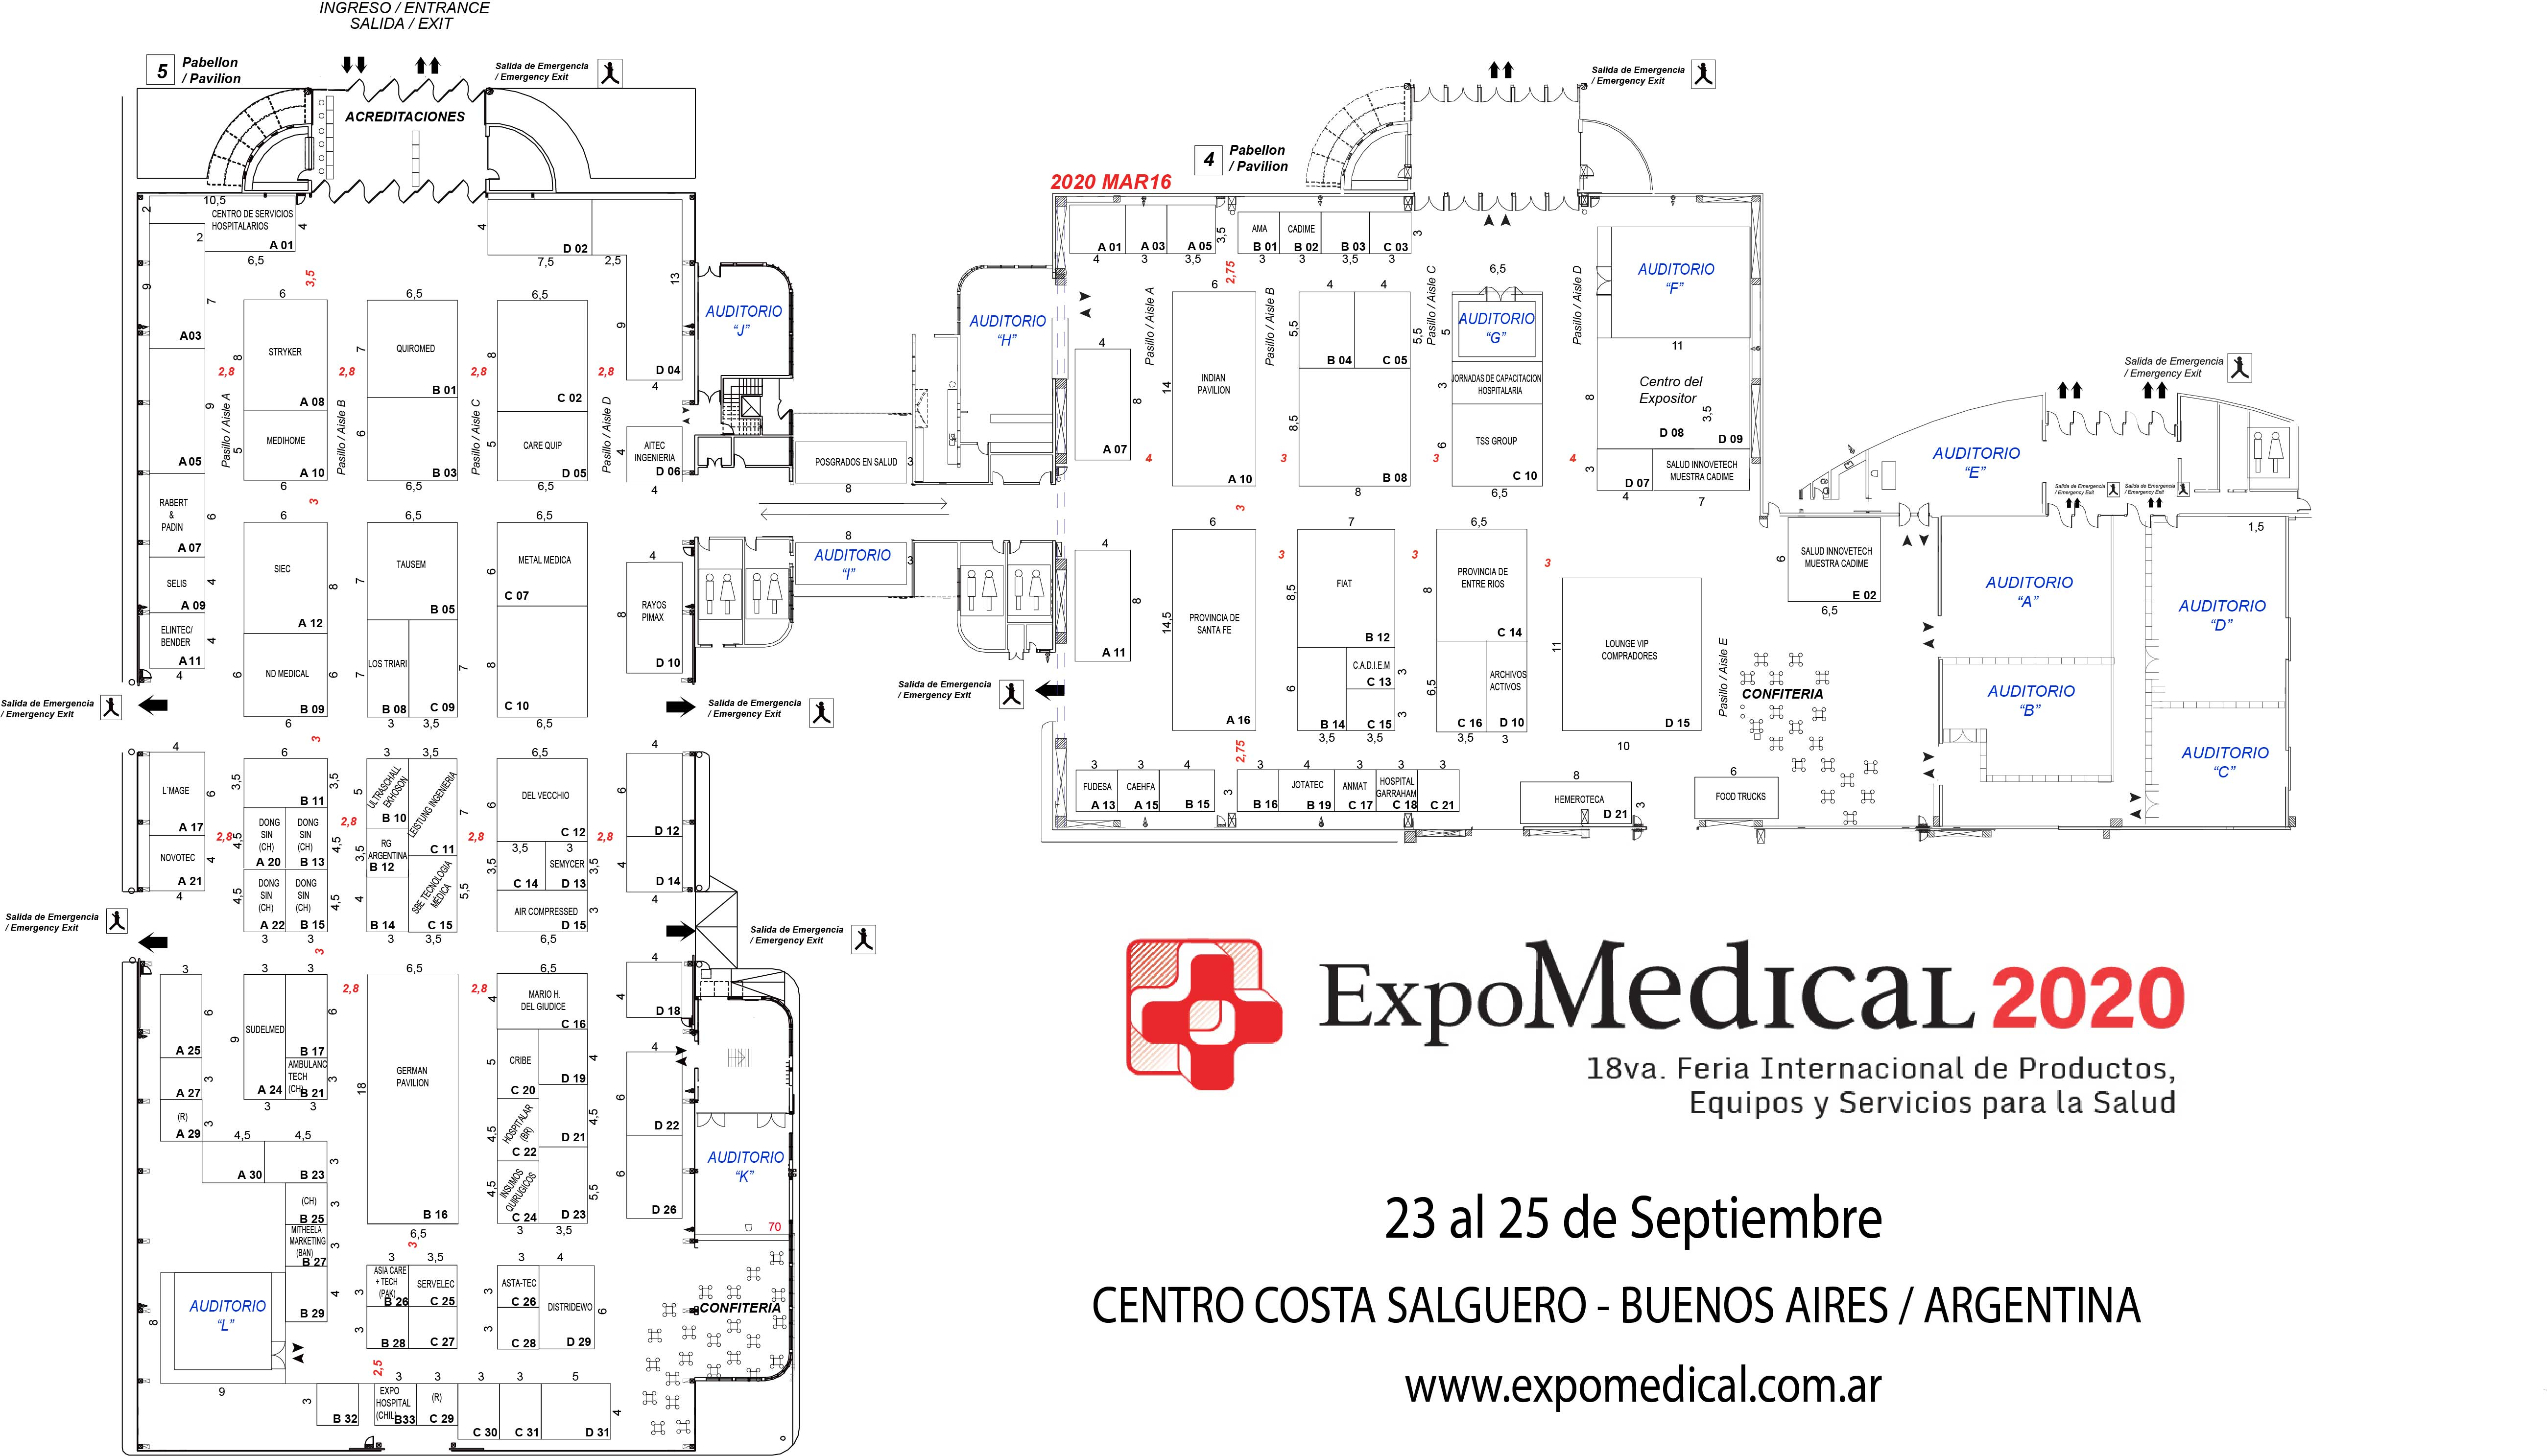 EXPOMEDICAL 2020 MARZ16